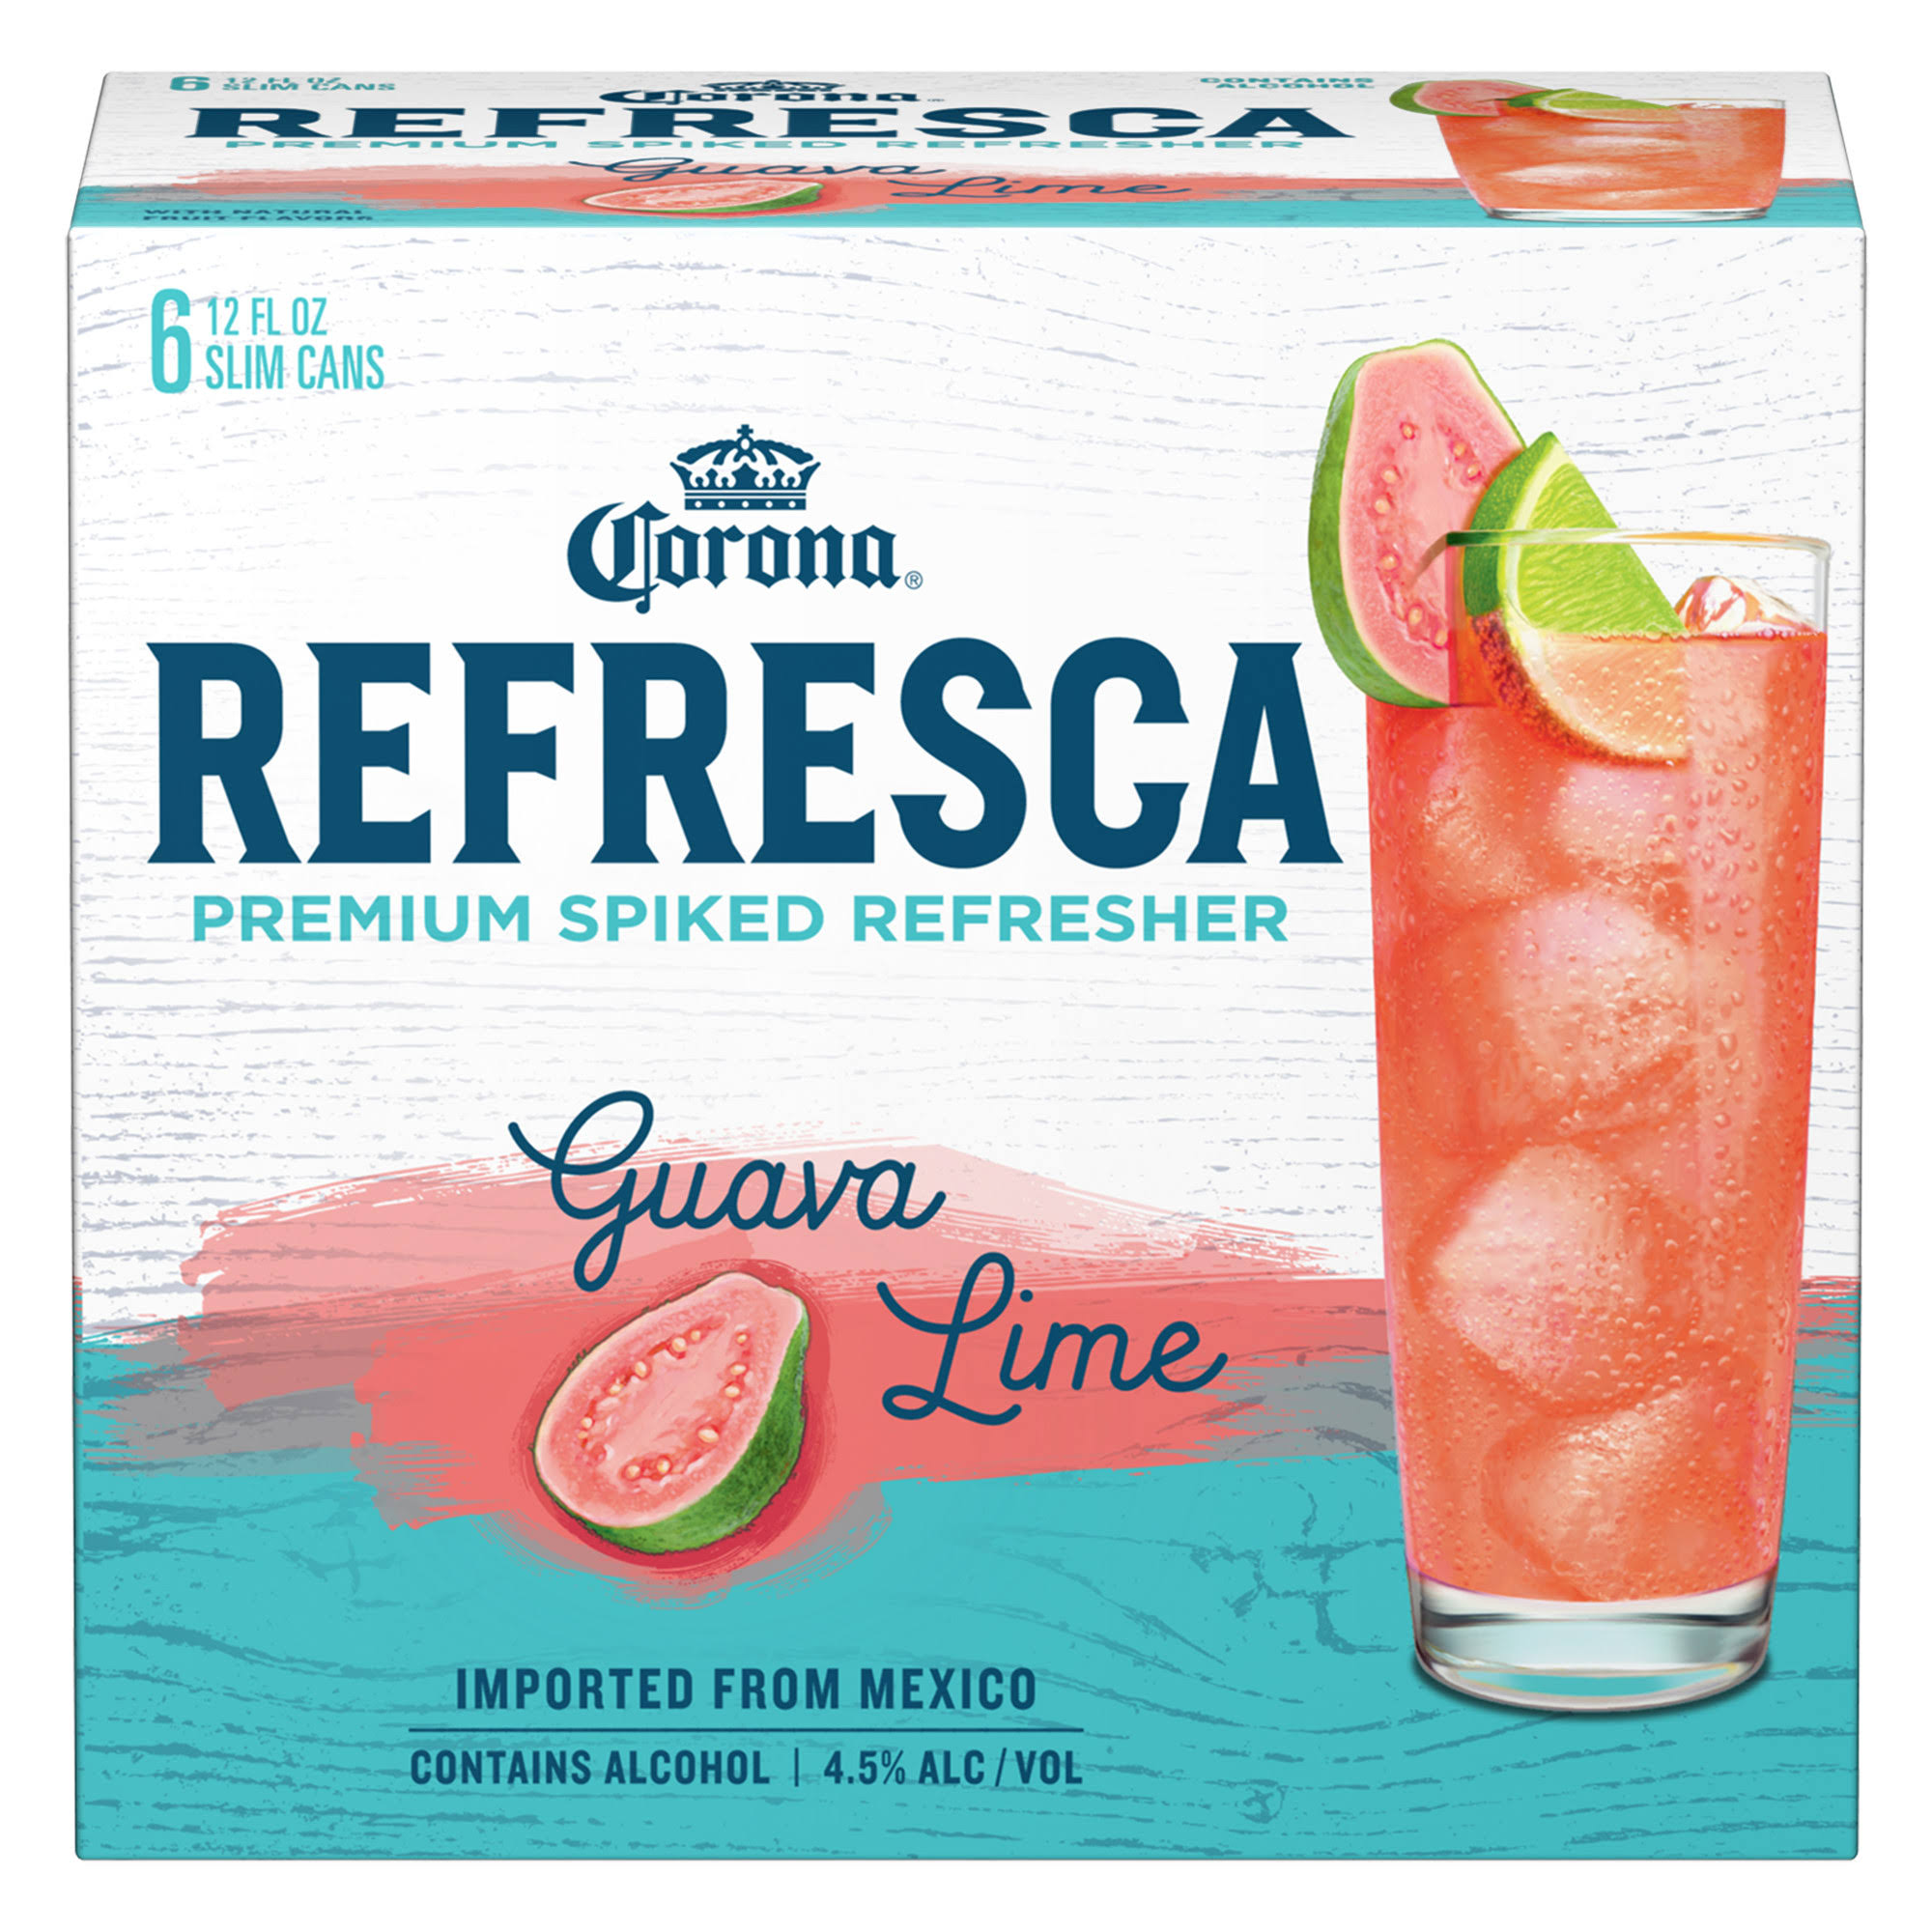 Corona Refresca Malt Beverage, Guava Lime - 6 pack, 12 fl oz cans